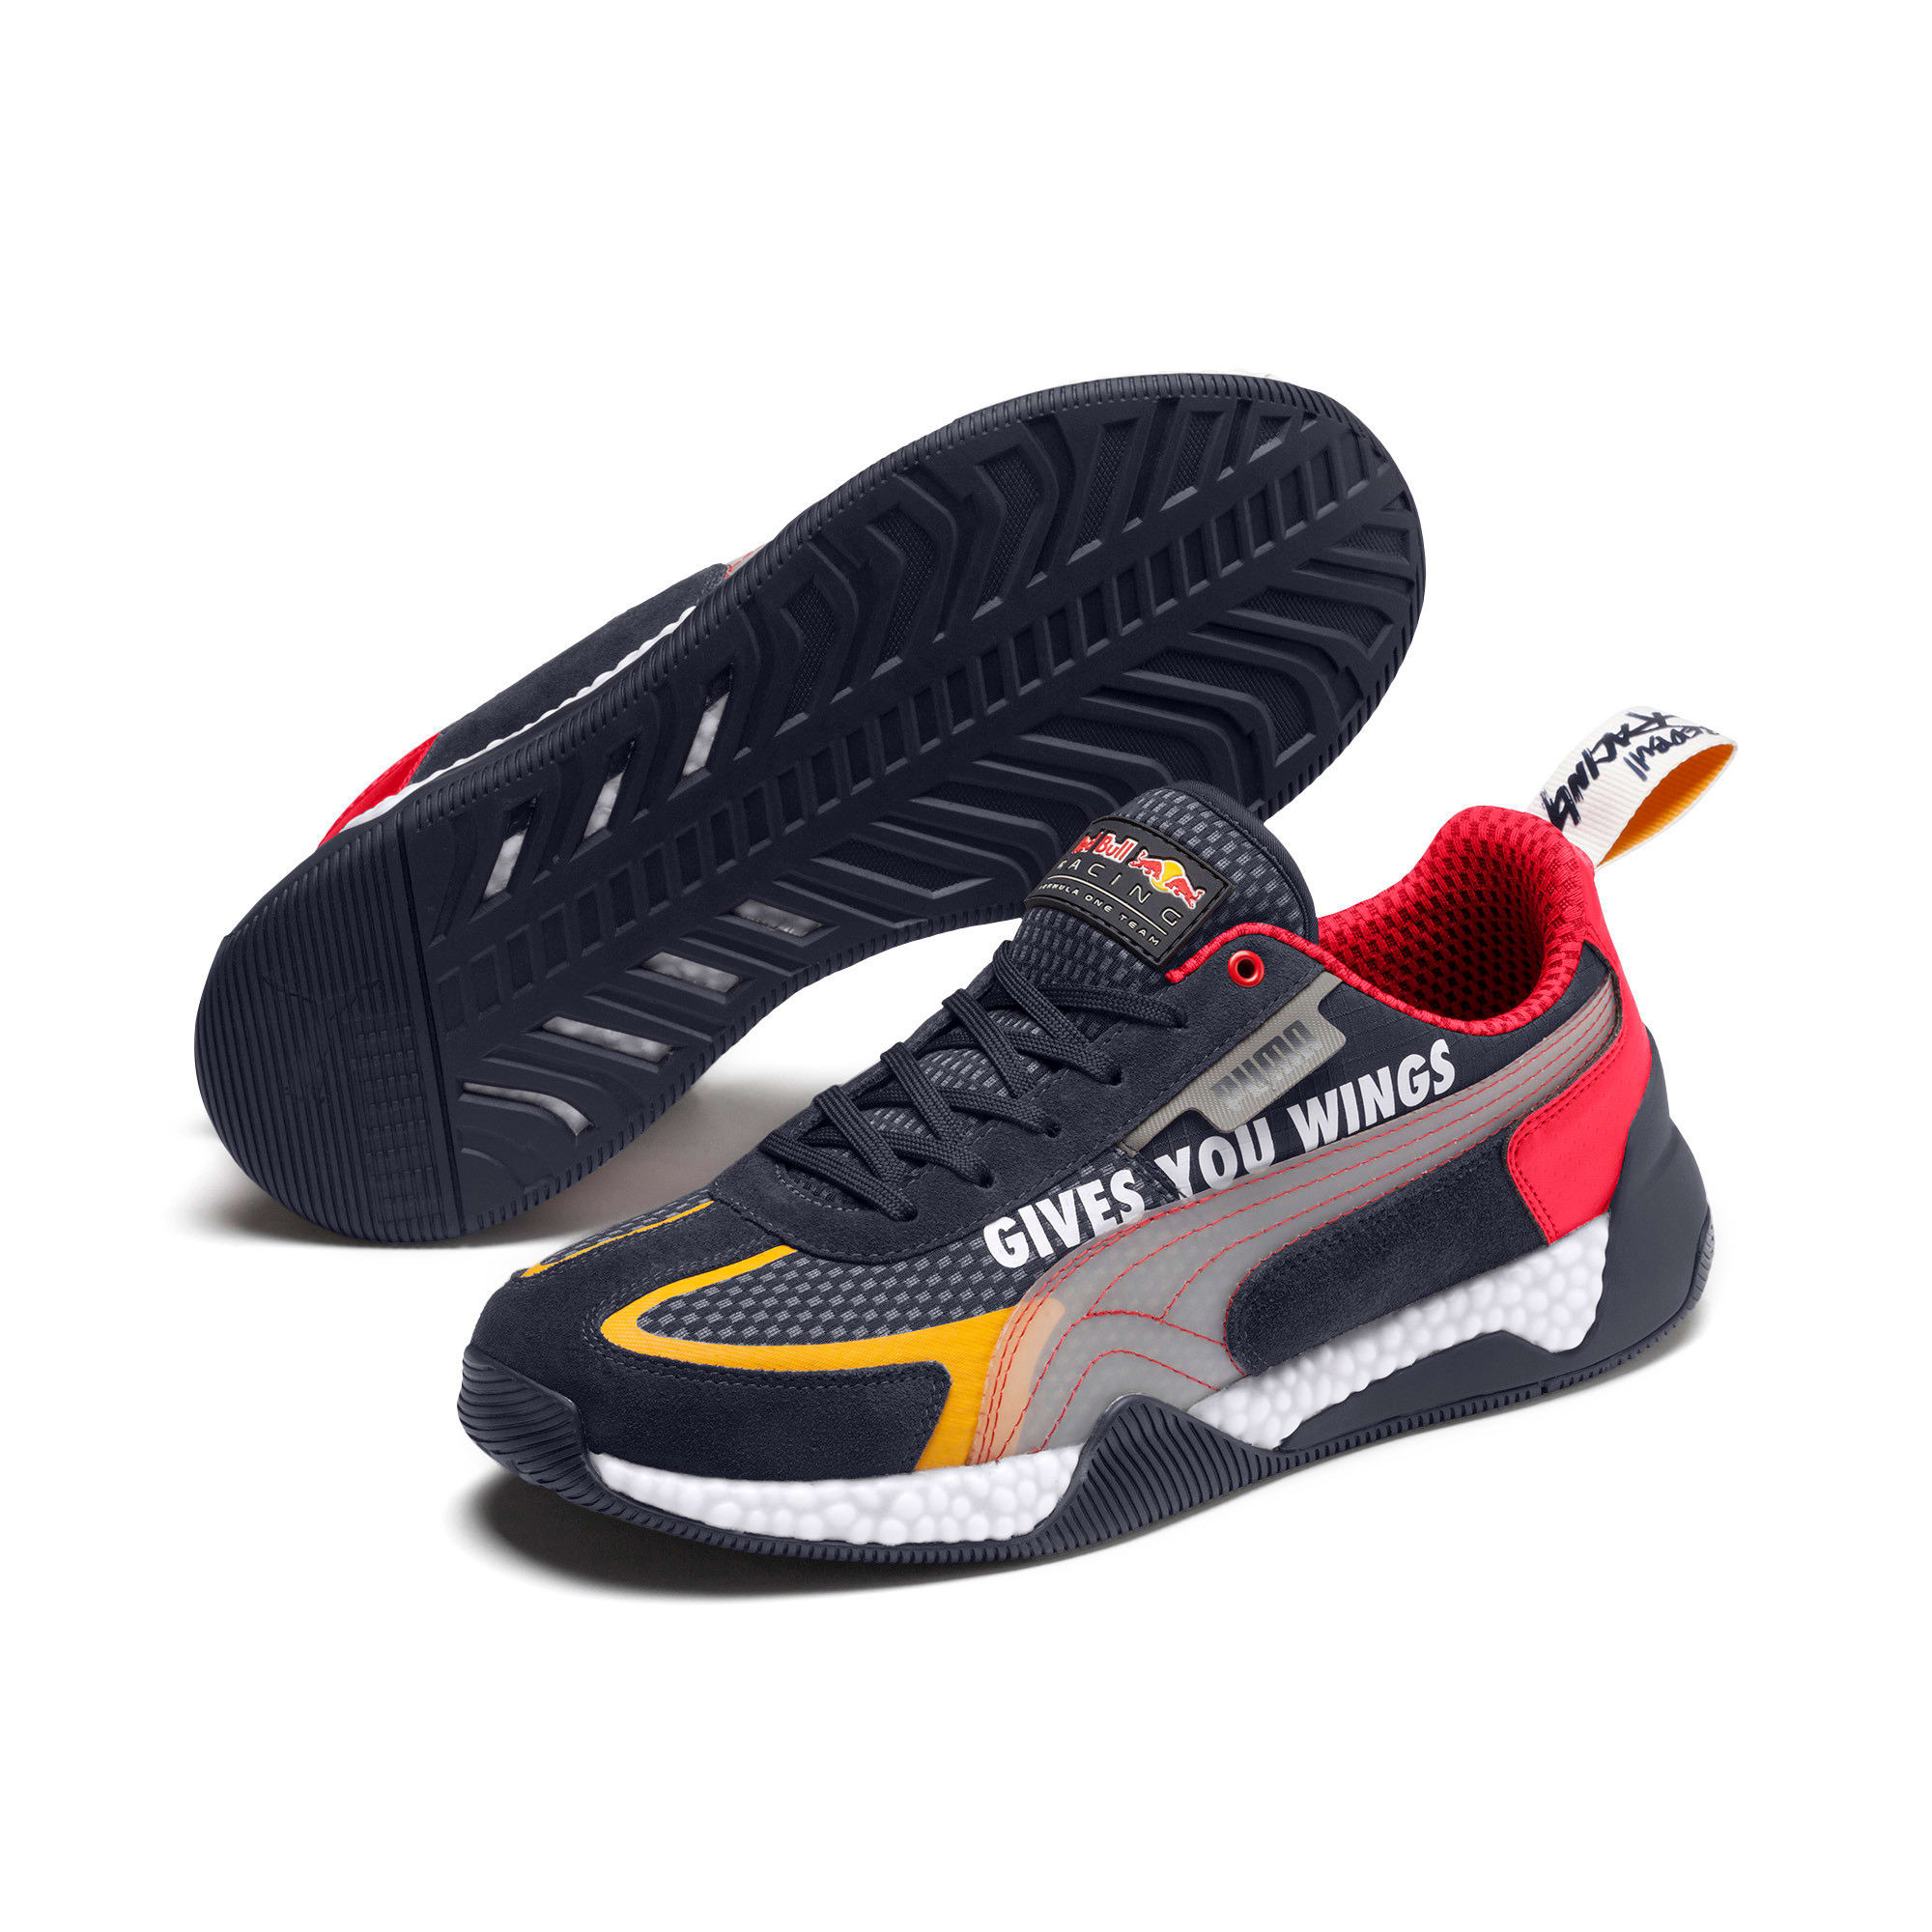 Thumbnail 4 of Red Bull Racing Speed HYBRID Men's Trainers, NIGHT SKY-White-Chinese Red, medium-IND